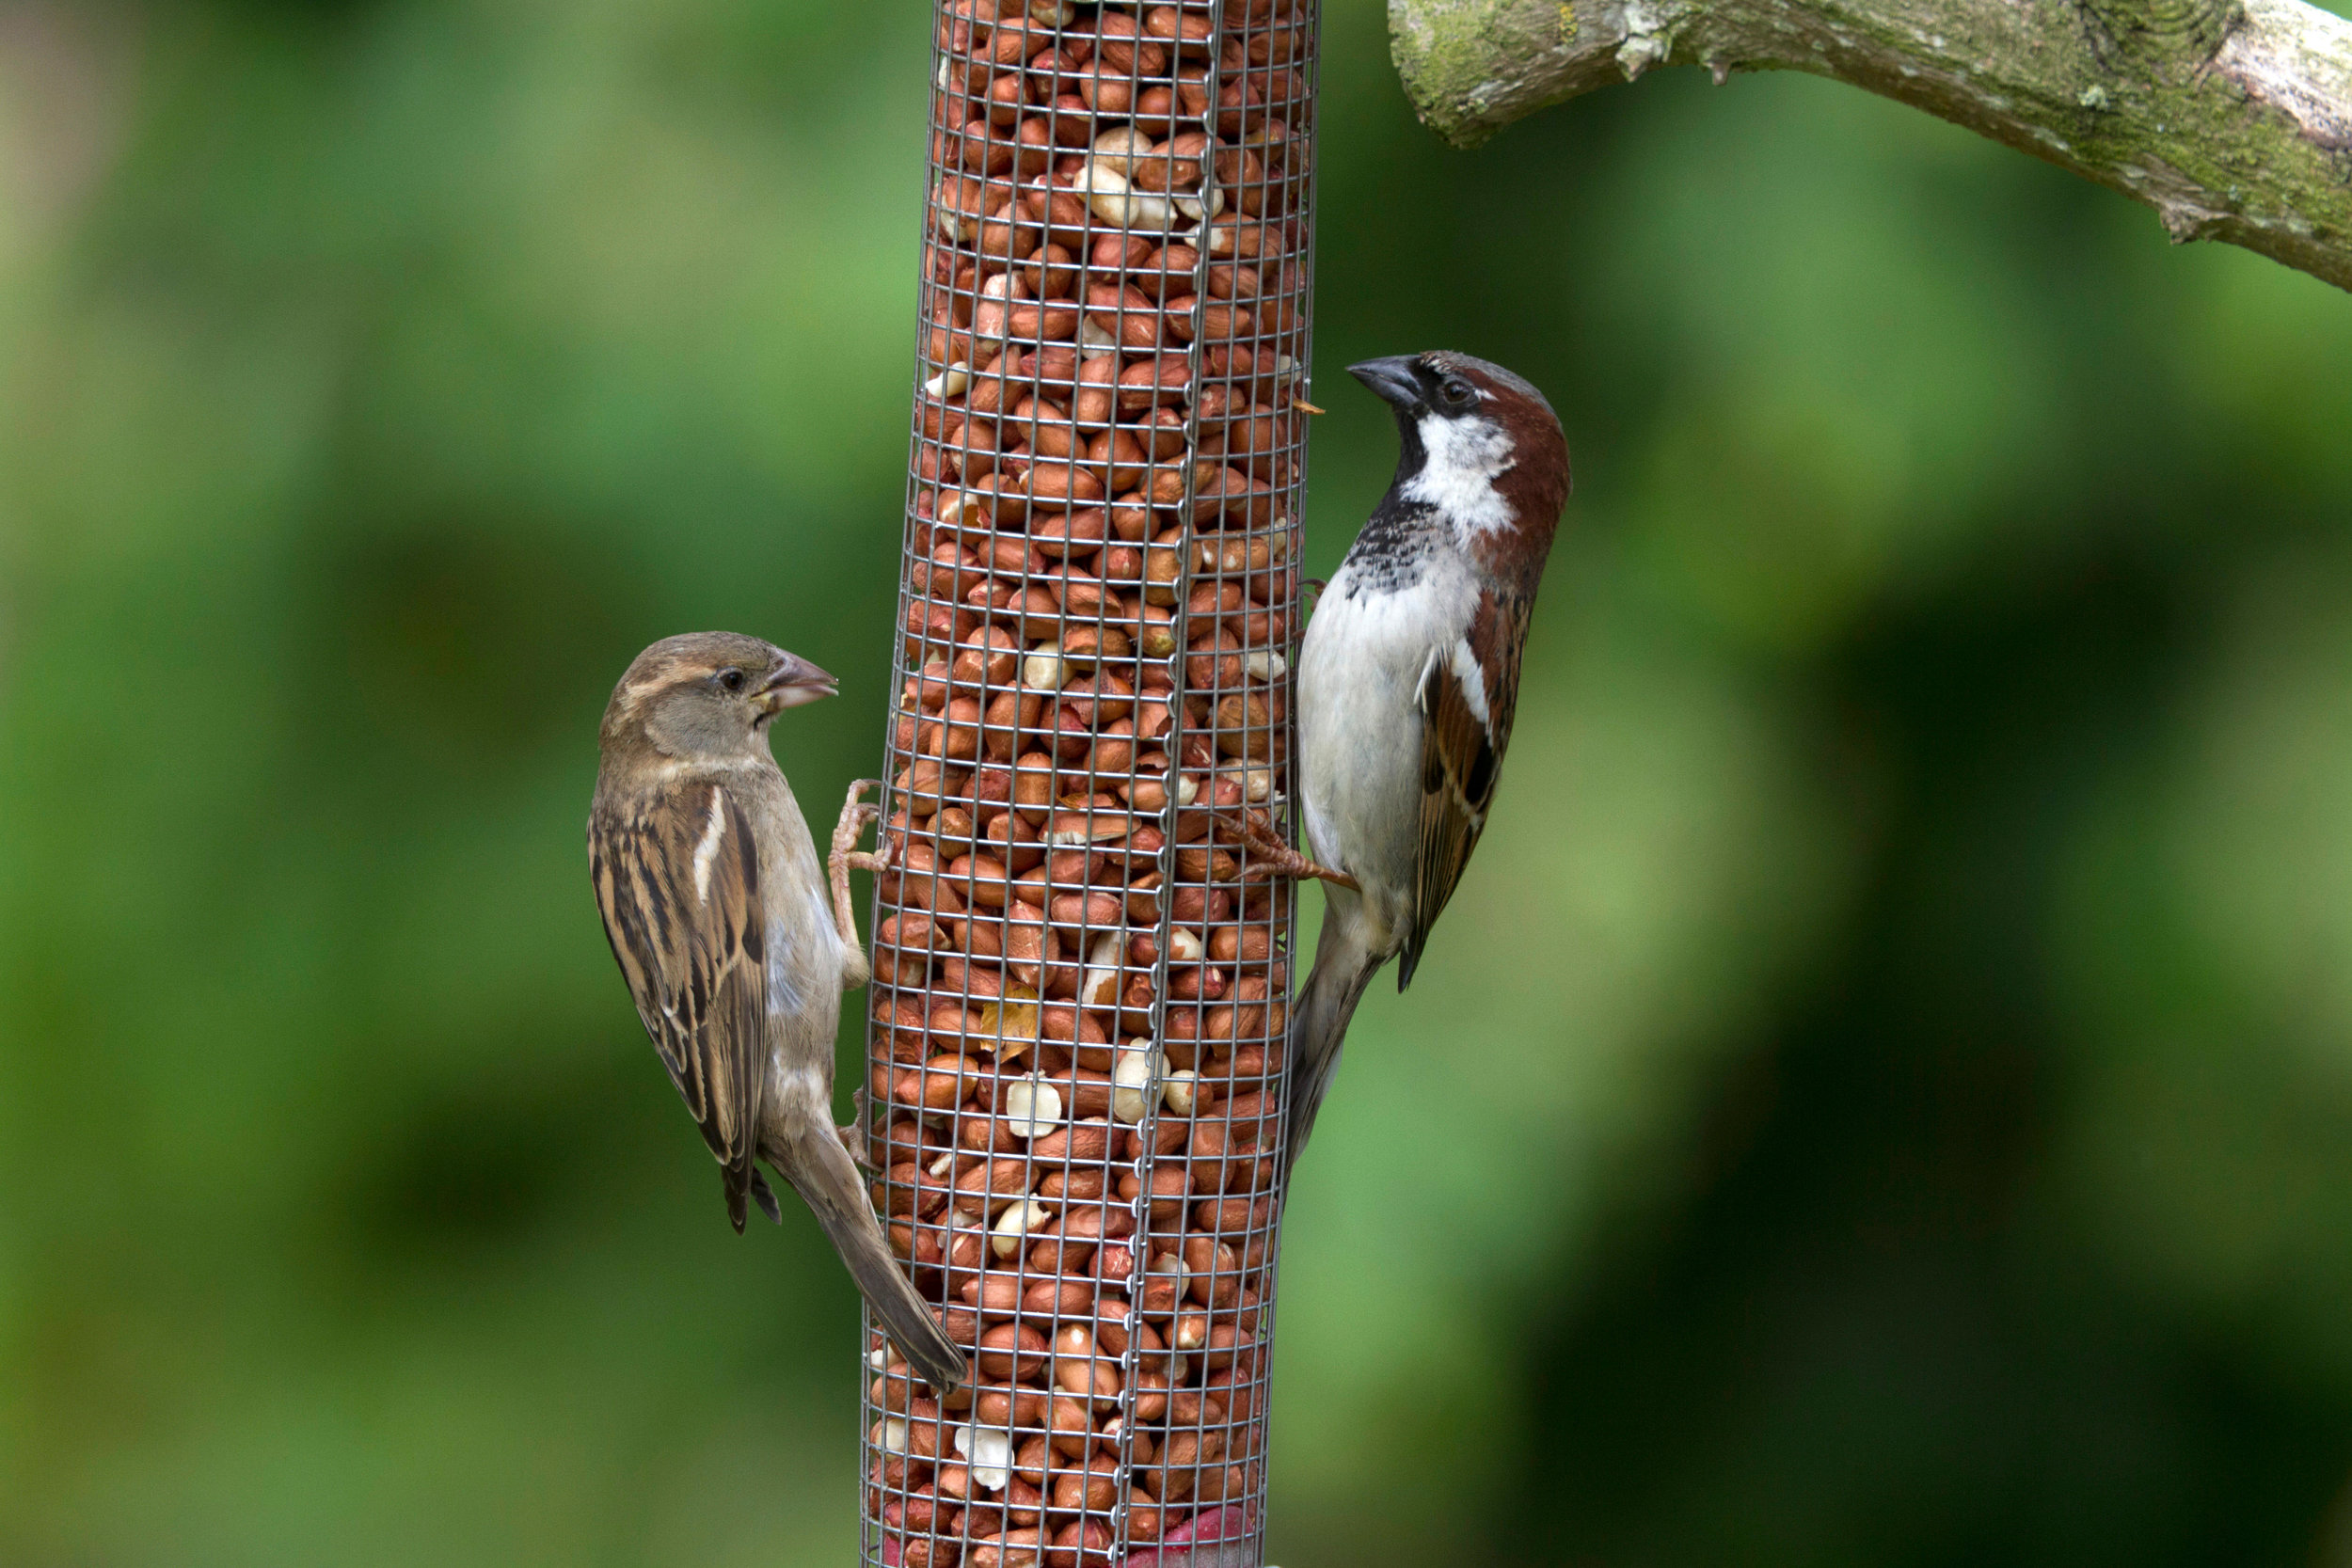 Female (left) and male (right) House Sparrow